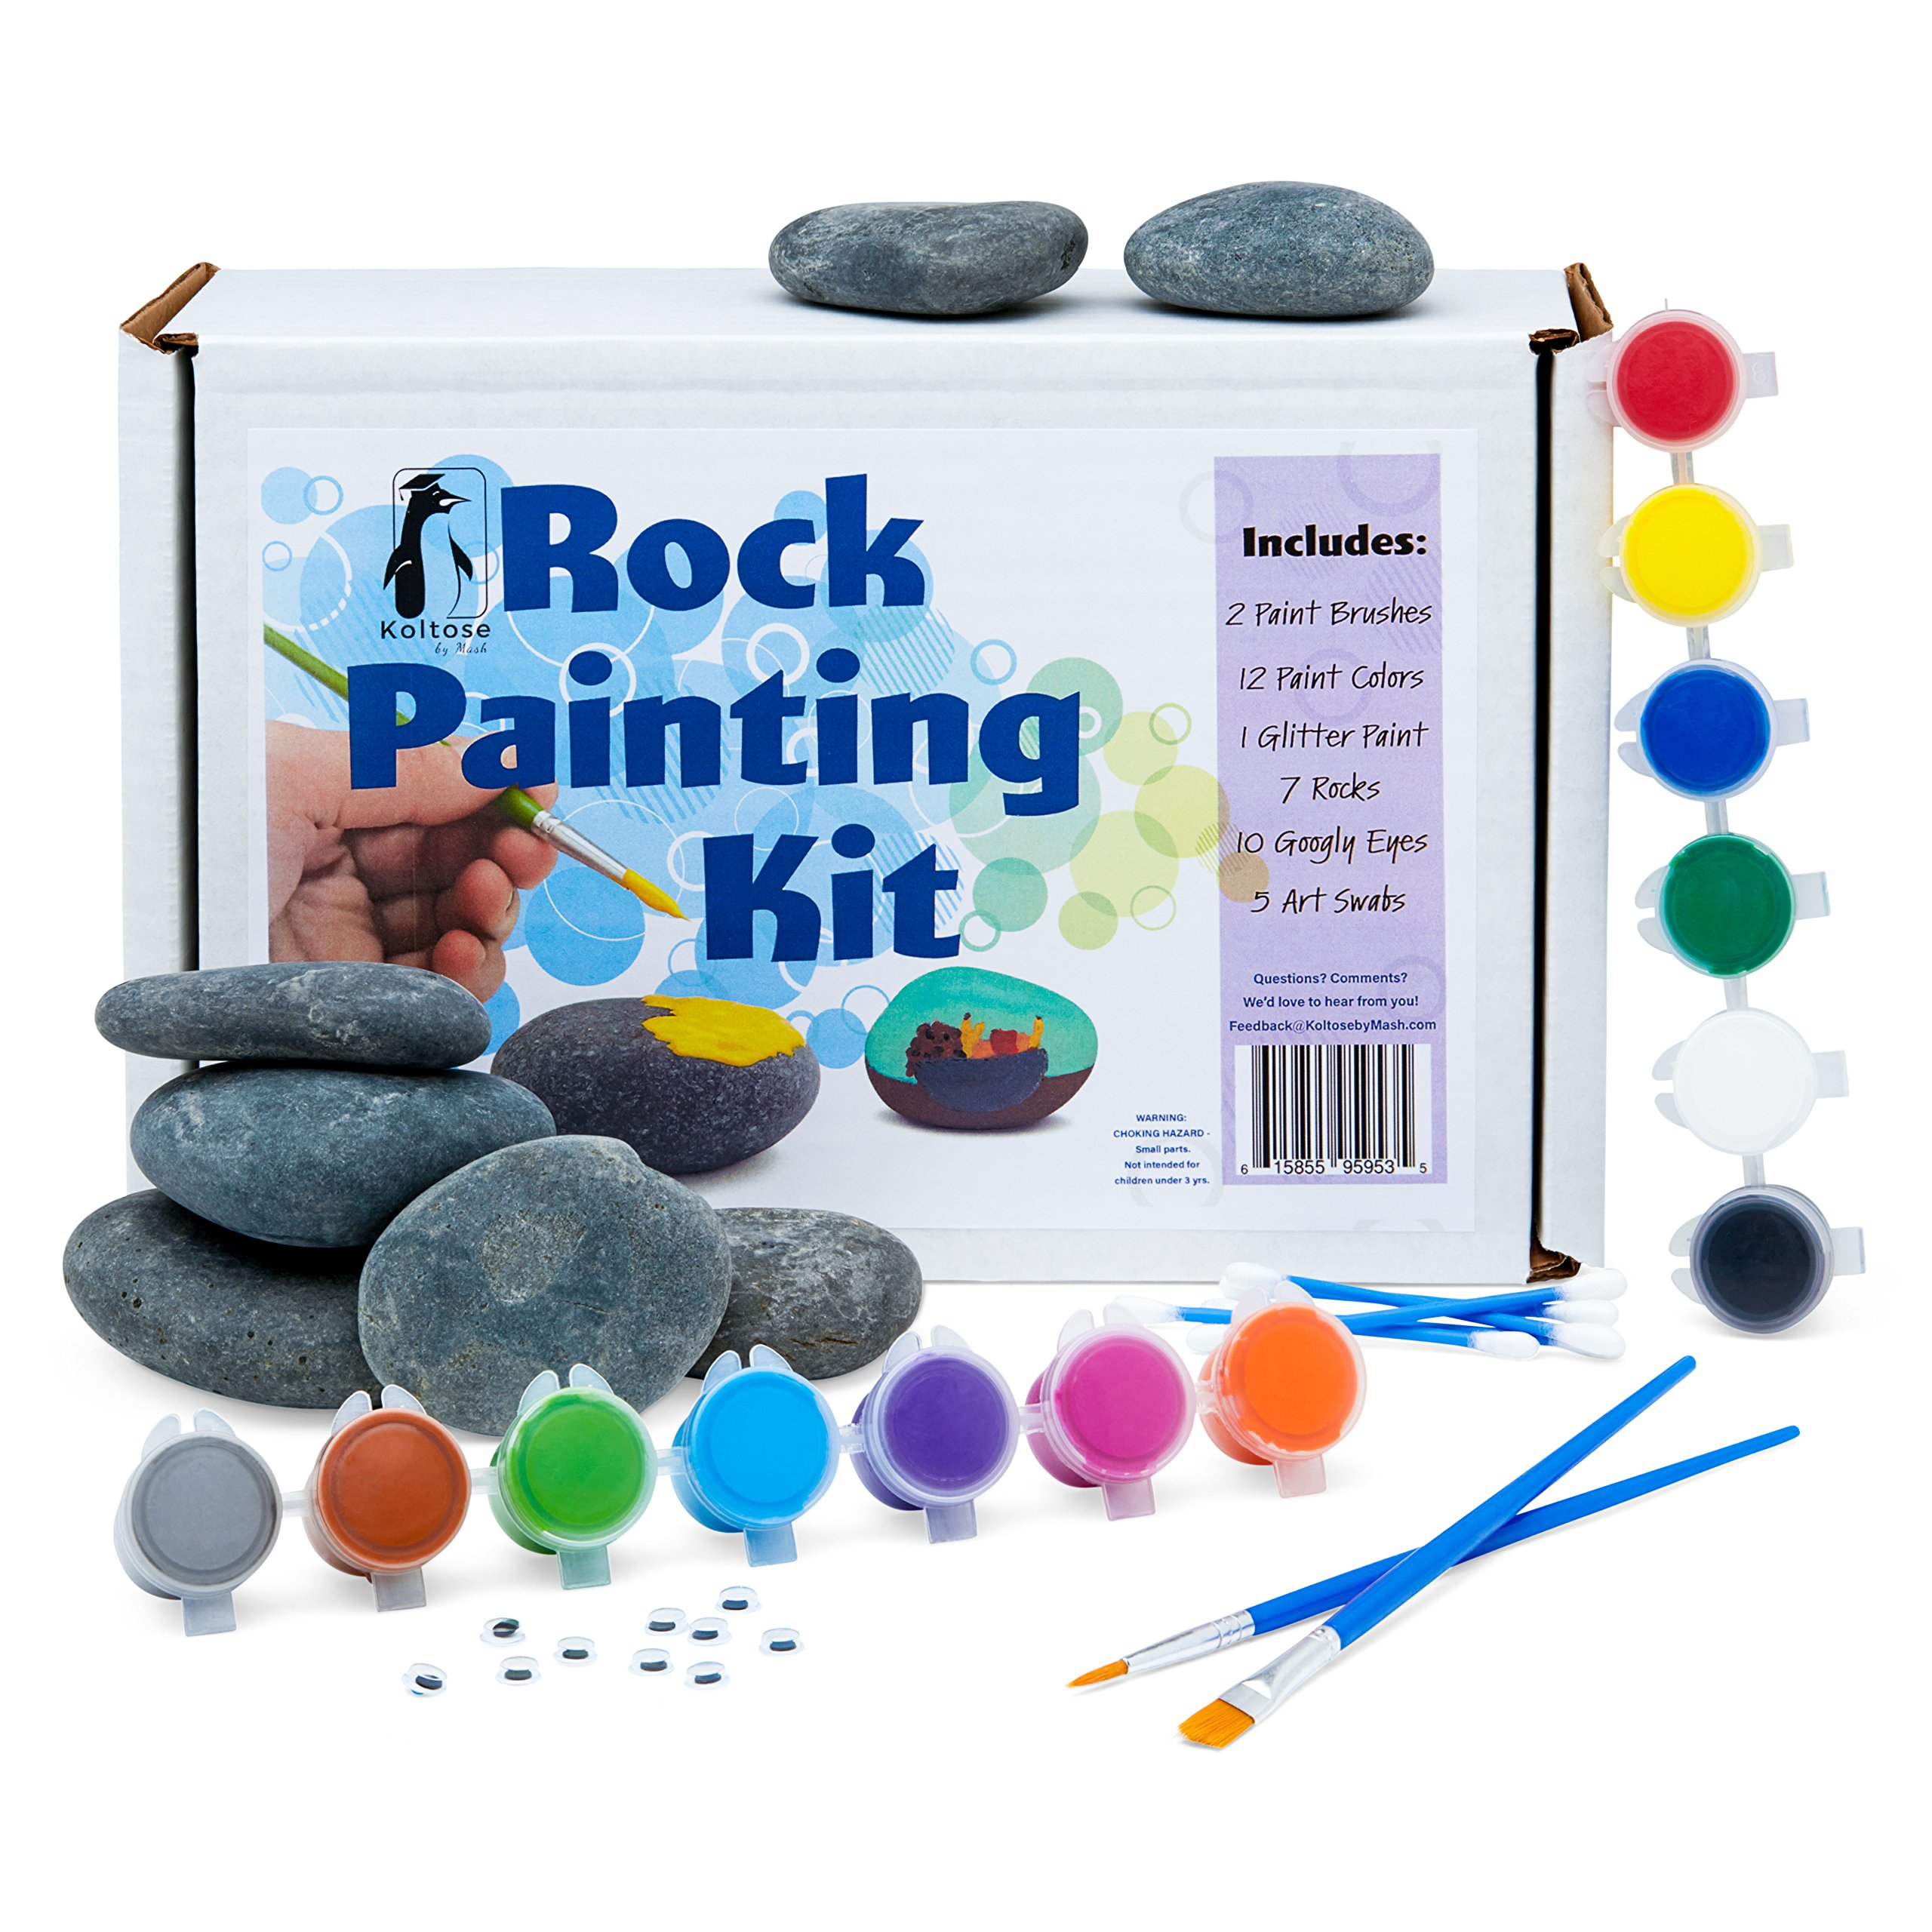 Rock Painting Kit, Rock Painting Supplies Set, River Rock Arts and Crafts Projects for Kids and Adults